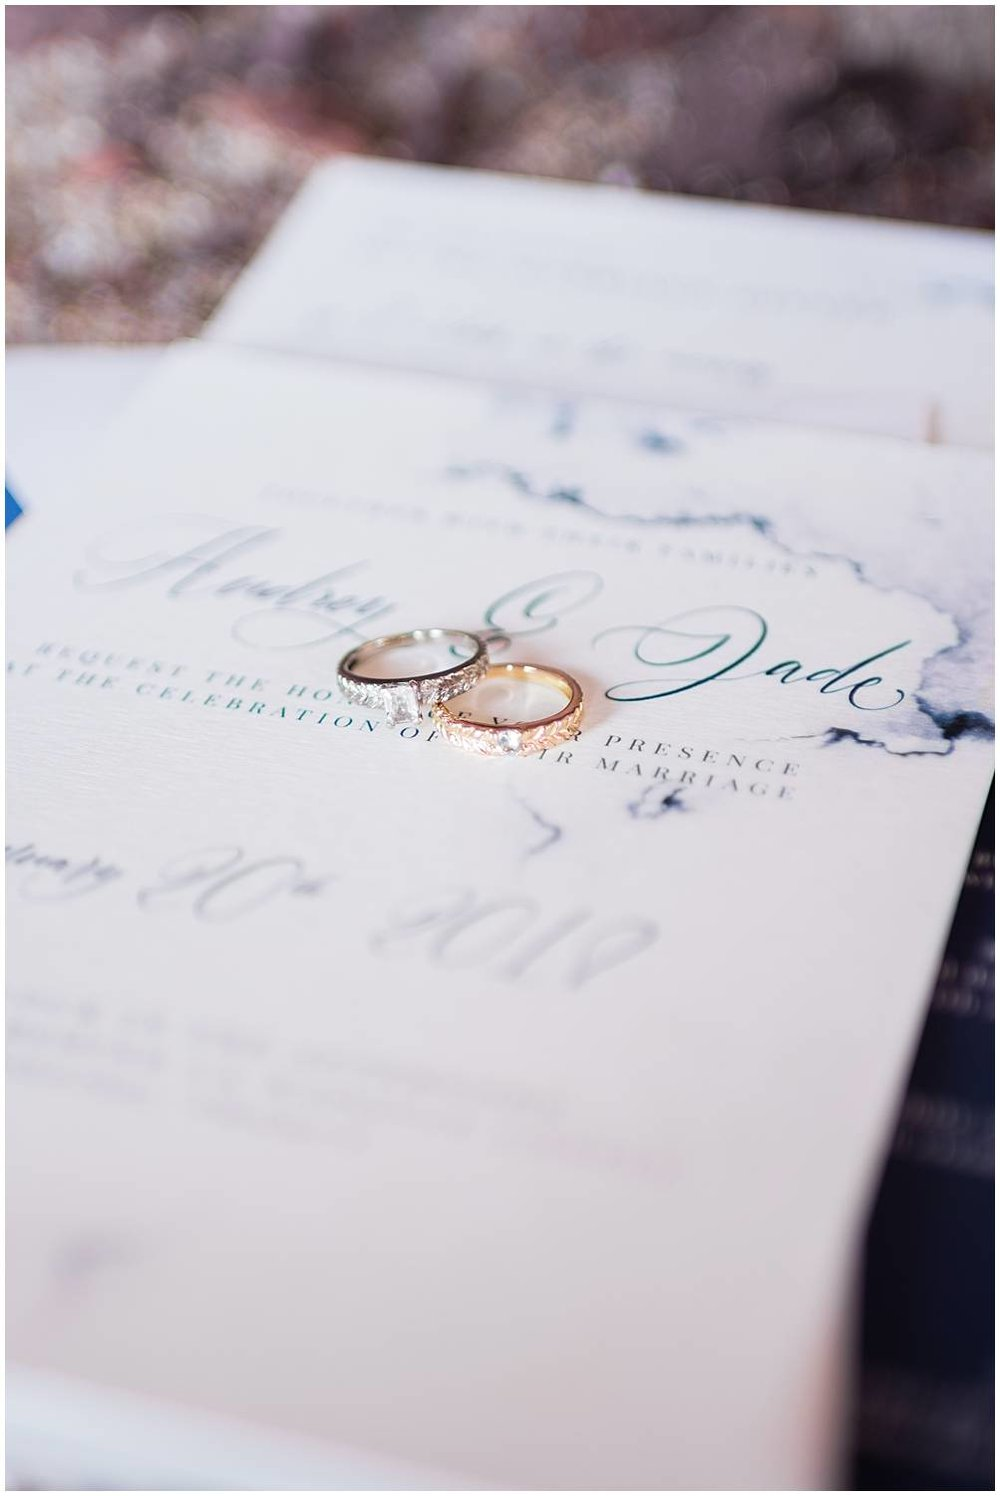 two wedding rings display on a stationery